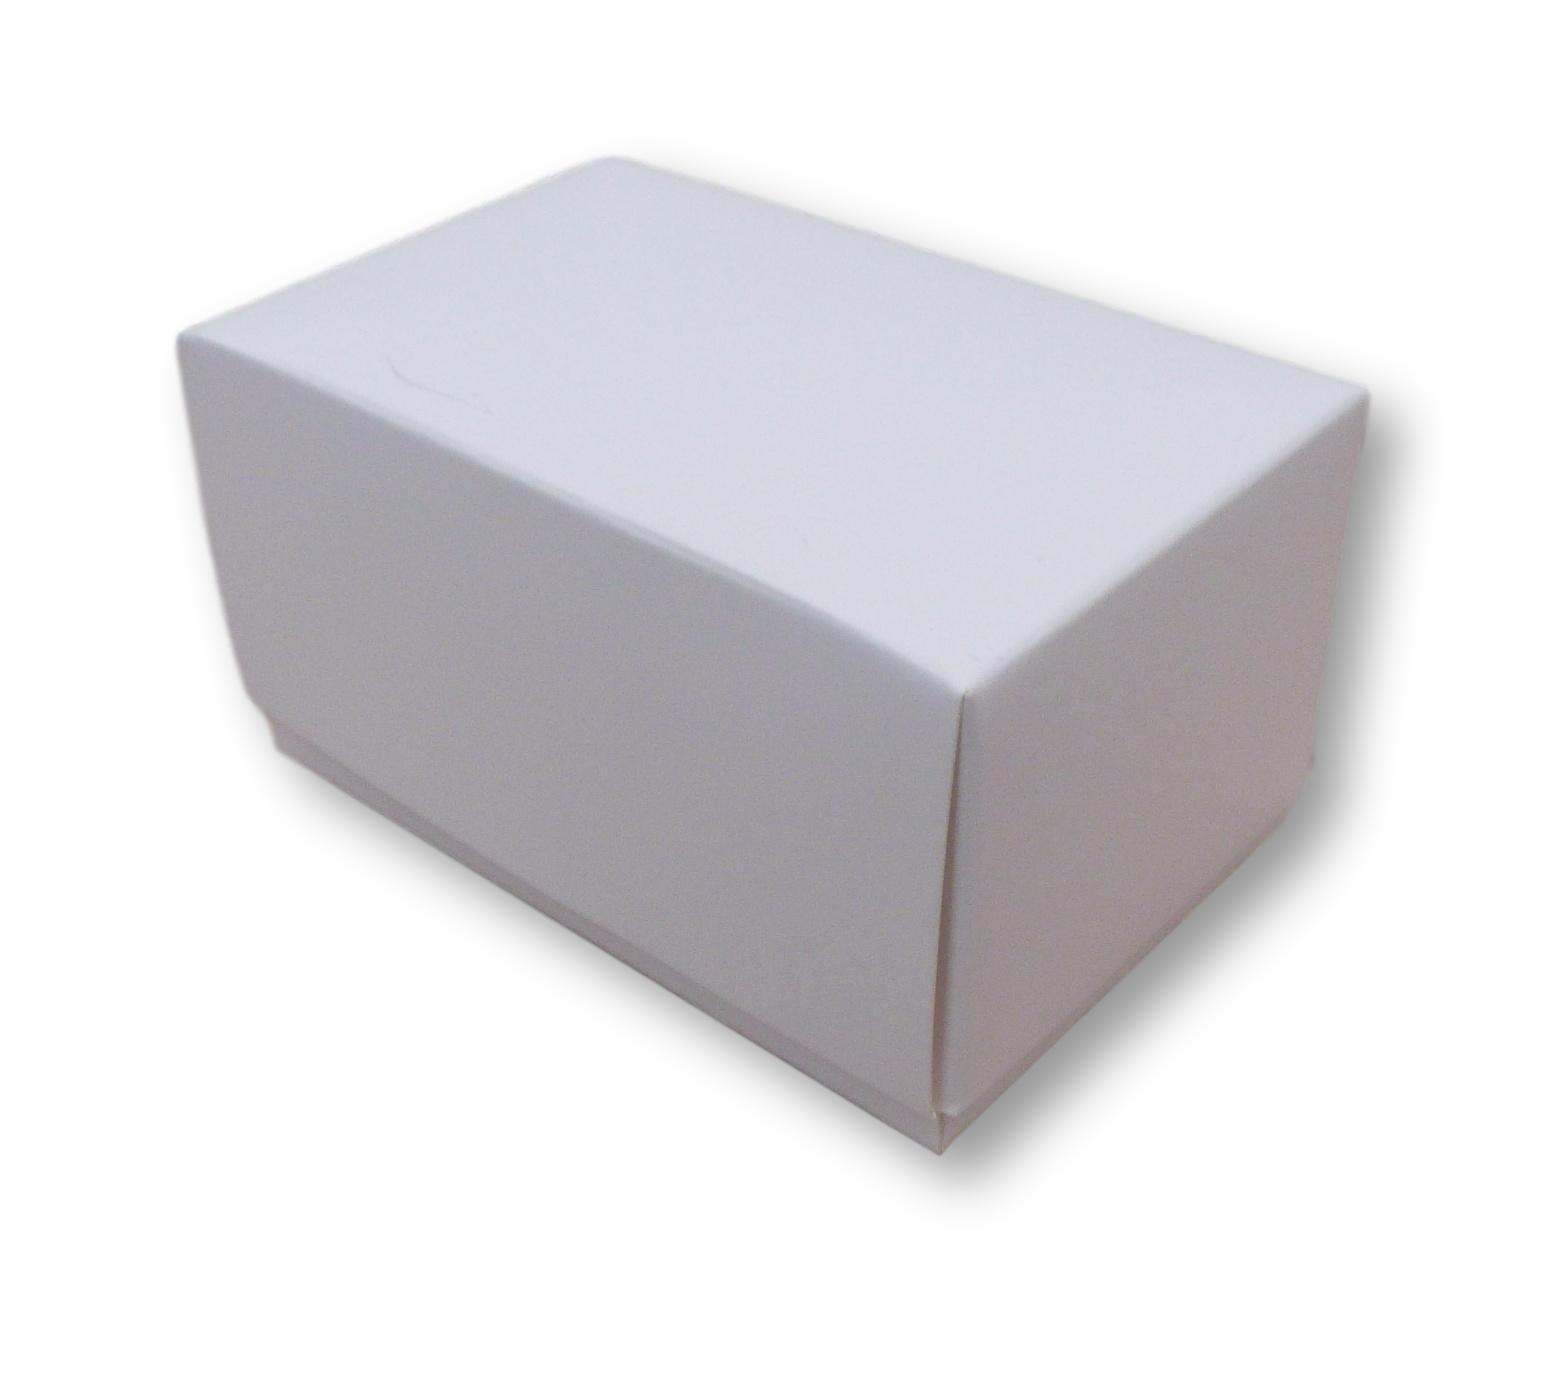 100 Weiß BOXES, BUSINESS CARDS ,GIFTS, CAKES, FAVOURS, JEWELLERY ETC ETC ETC a5b433